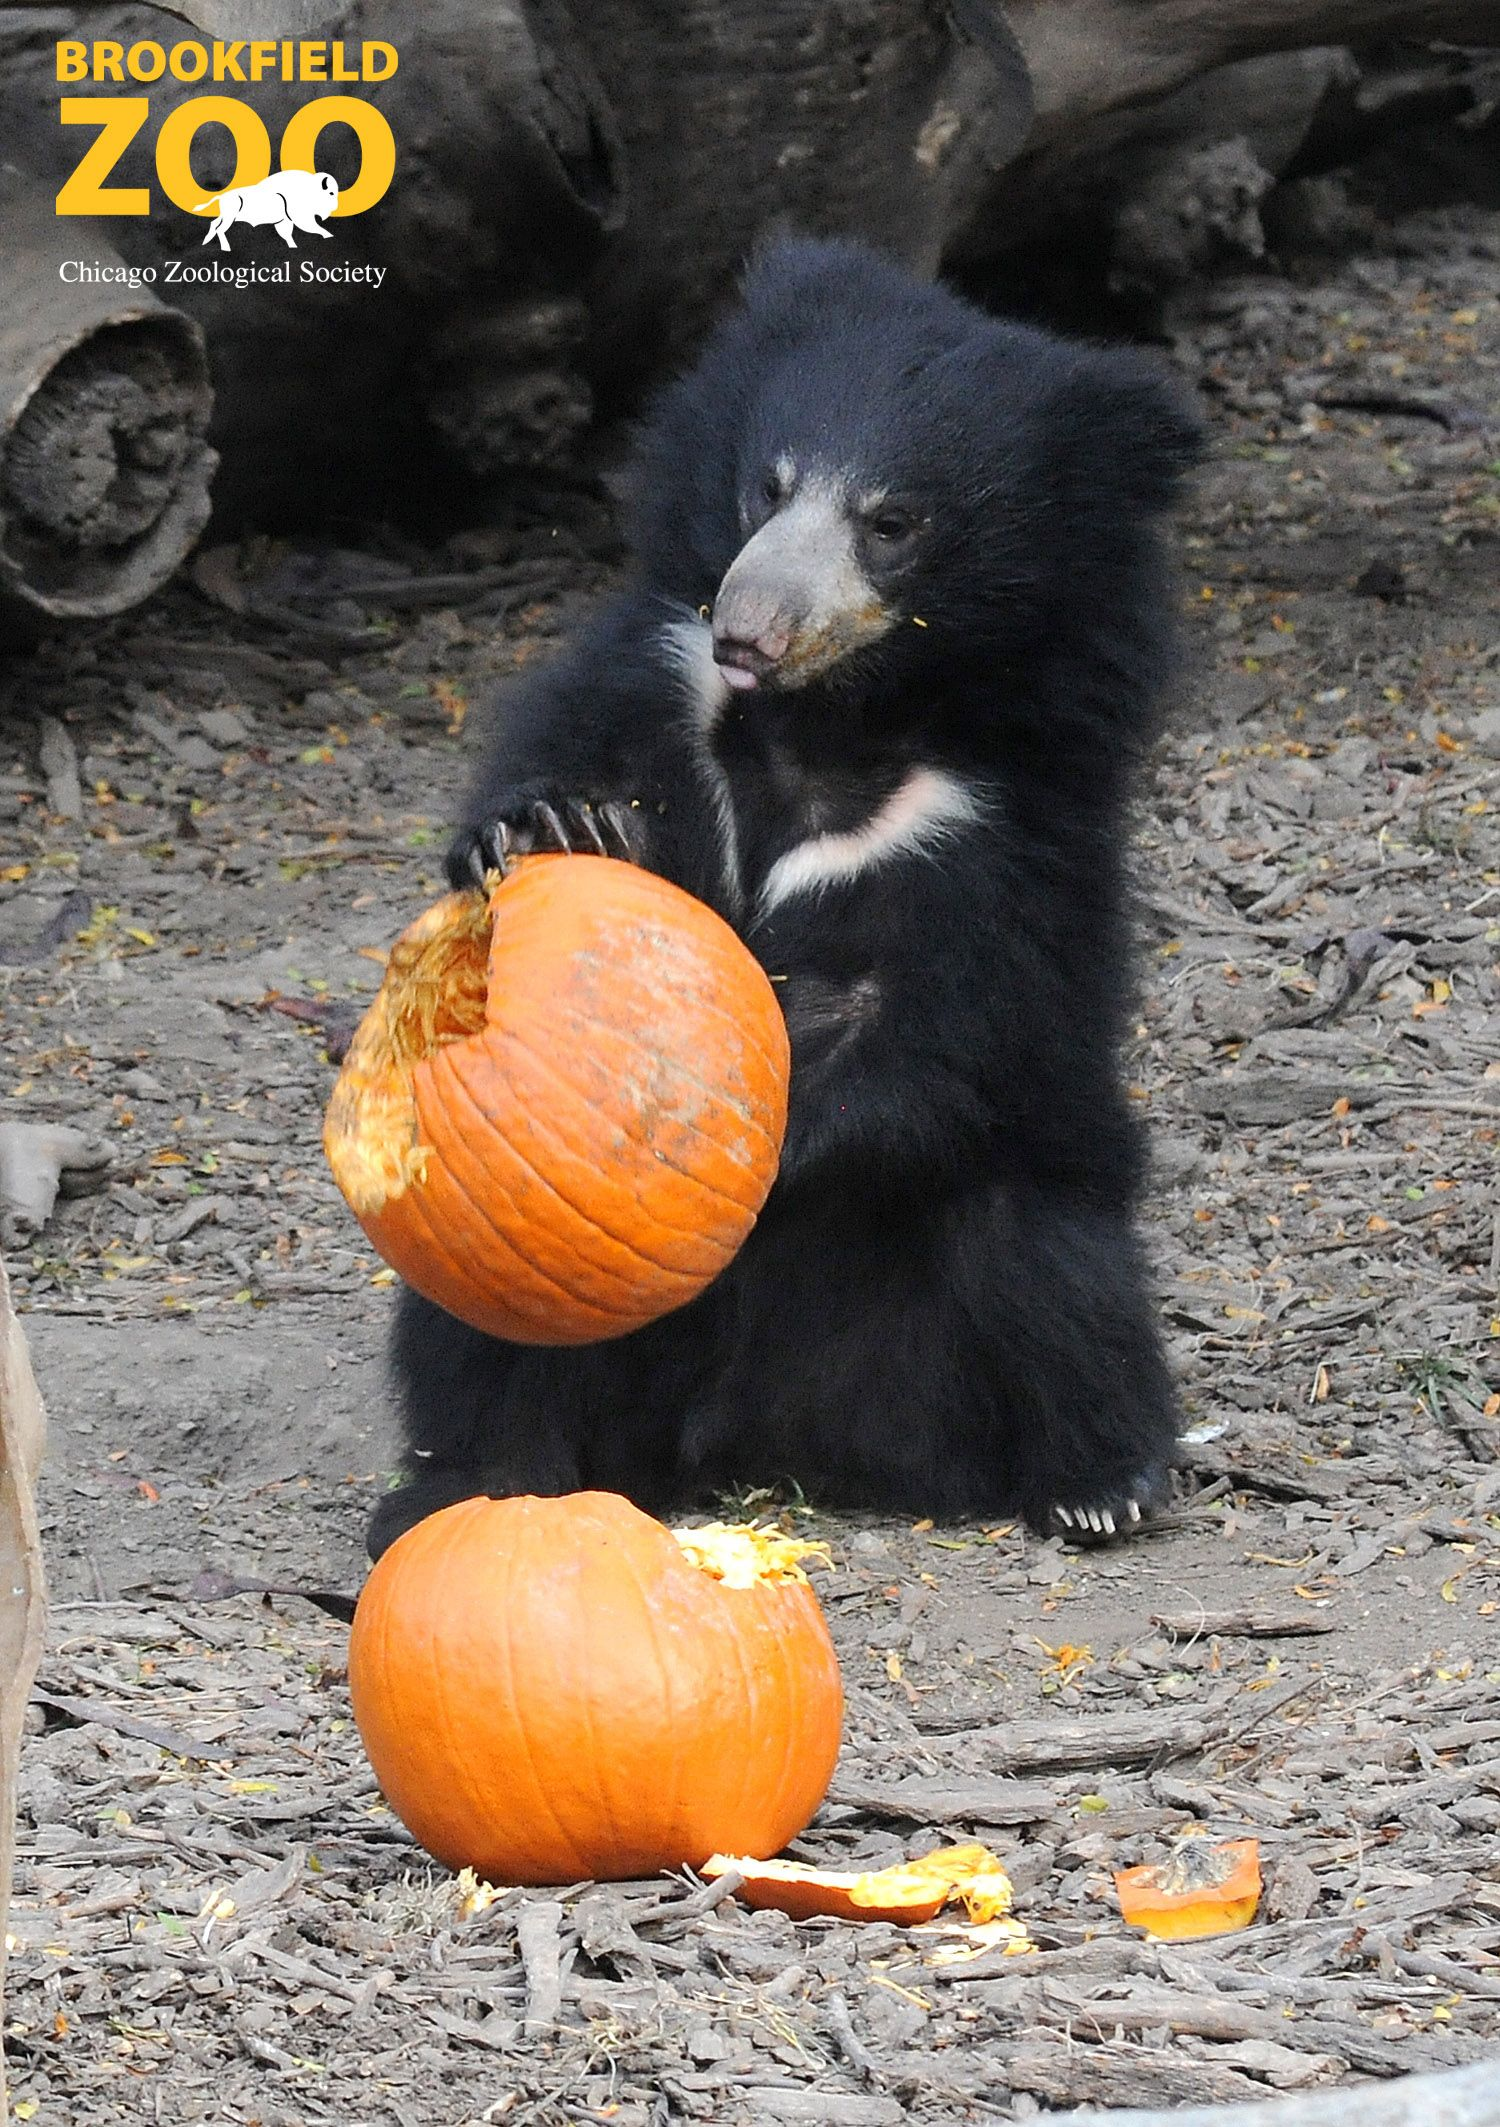 Bhalu, a 10monthold sloth bear at Brookfield Zoo, seems